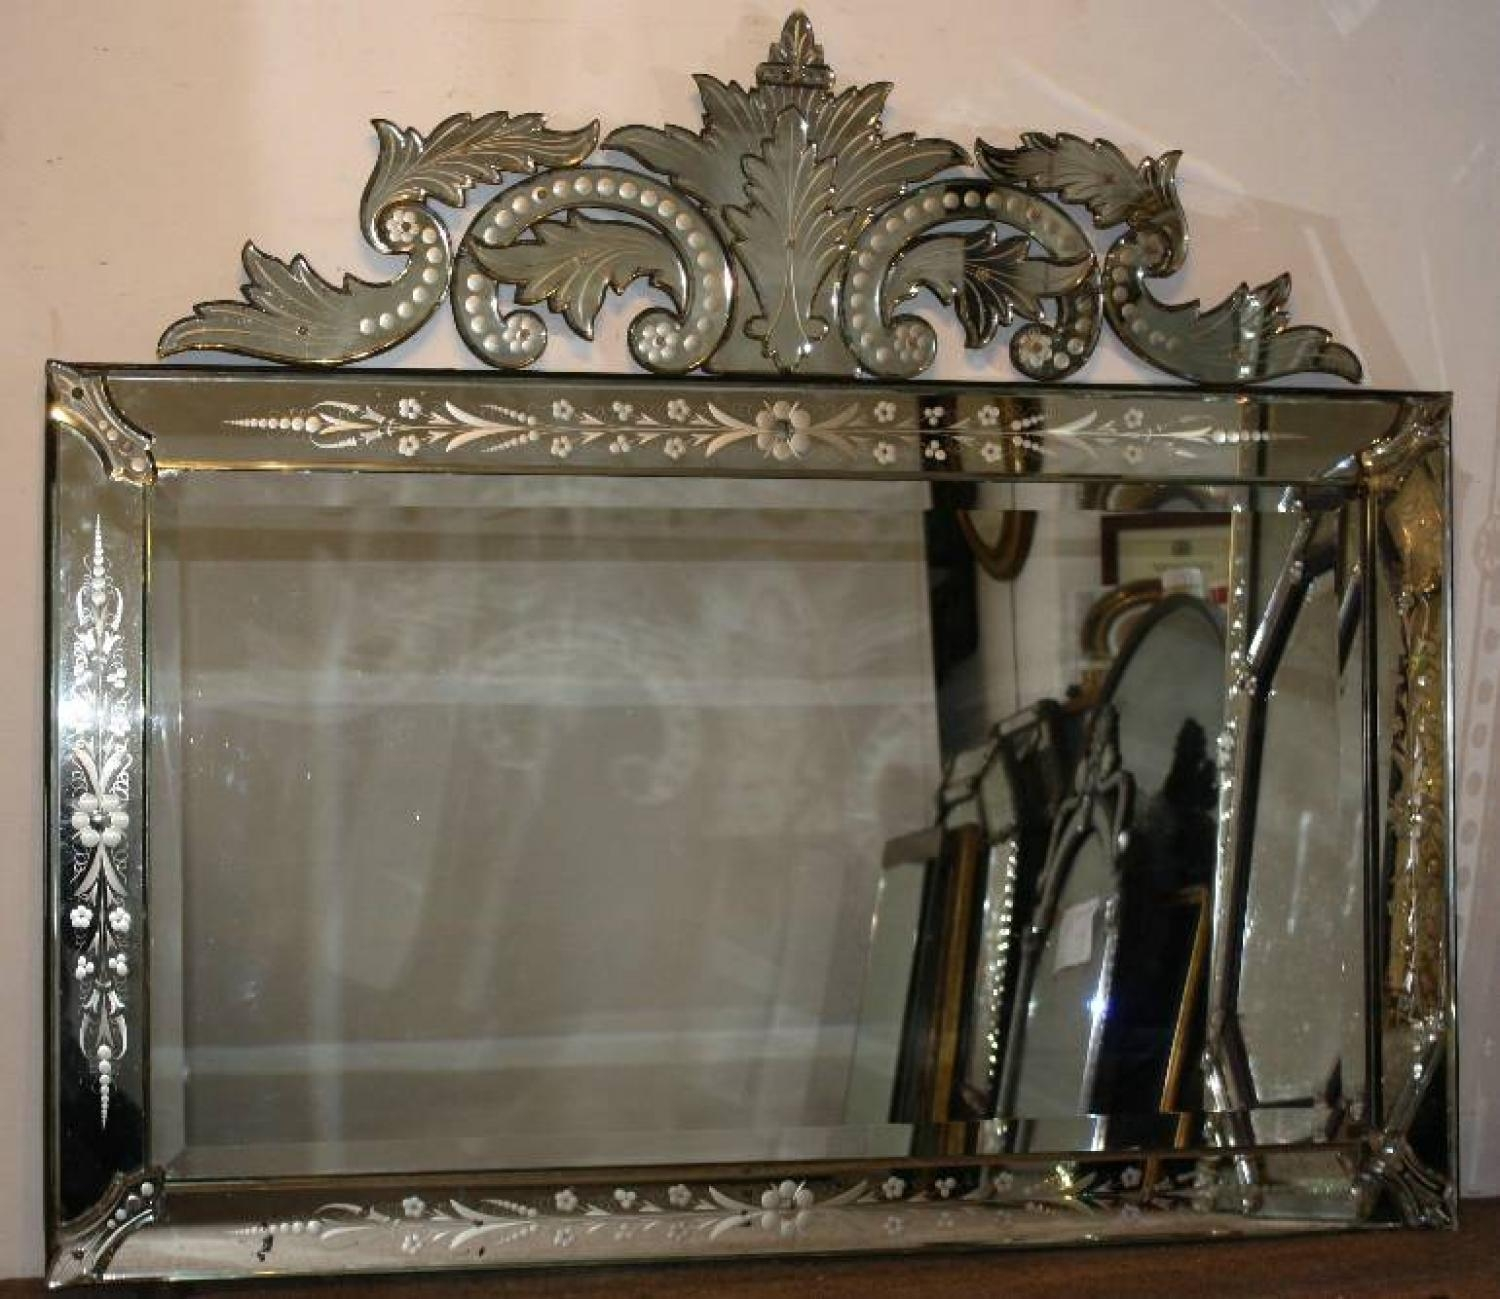 Venetian Mirrors For Sale | Vanity Decoration For Venetian Glass Mirrors Sale (Image 17 of 20)